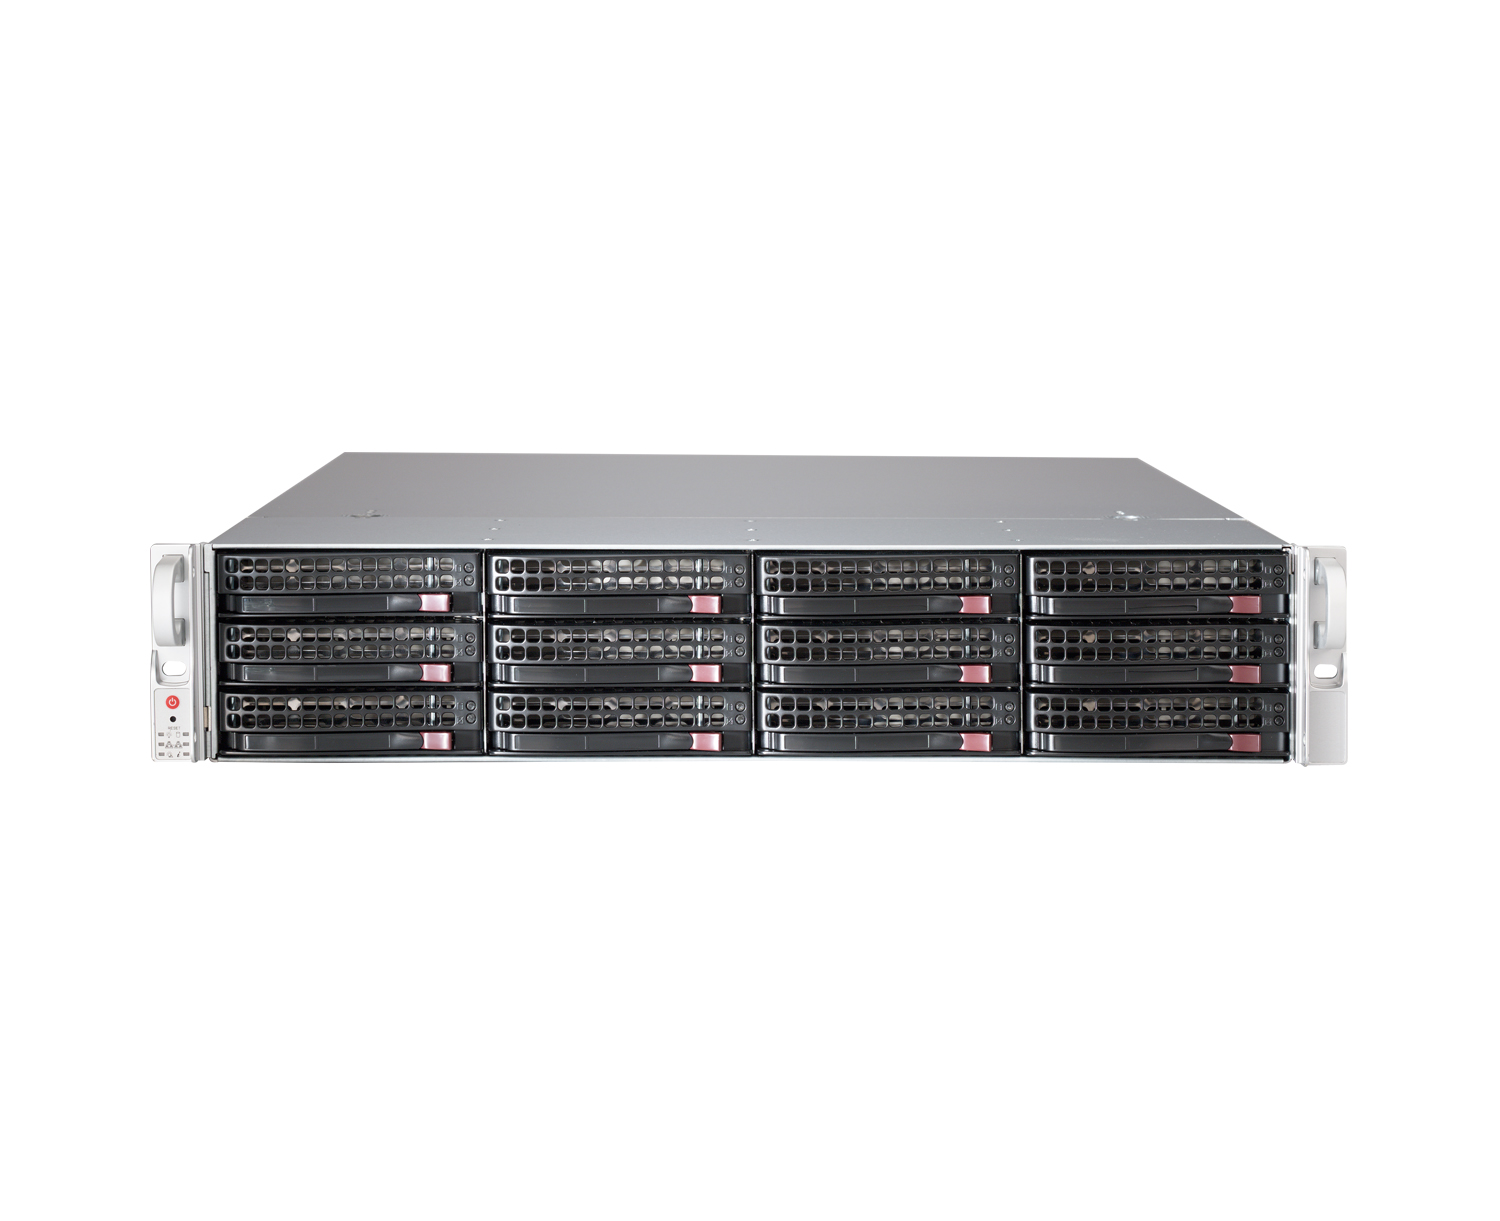 DW-BJER2U48T DIGITAL WATCHDOG Blackjack E-Rack NVR Powered by DW Spectrum IPVMS Software, Includes 8 IP Camera Licenses, 2U rack-mount, 12 HDD Bay, 48TB usable RAID storage, Capable of managing 128 1080P Cameras at 30fps, 600 Mbps throughput , RAID 5, I7 Processor, 16G Memory, 1Gbps X2, VGA / HDMI X 2 / DP X 4, Win 7 64 Bit OS, Cross Platform: Windows and Linux, Graphic System Health Monitor, True Enterprise Scalability, Automatic Camera Detection, Local Client Display, Fully, Customizable Layouts, Easy Drag and Drop Camera Management and Recording, E-Mapping, Advanced Motion Masking and Sensitivity Settings, Keyboard and mouse included, ************************* SPECIAL ORDER ITEM NO RETURNS OR SUBJECT TO RESTOCK FEE *************************